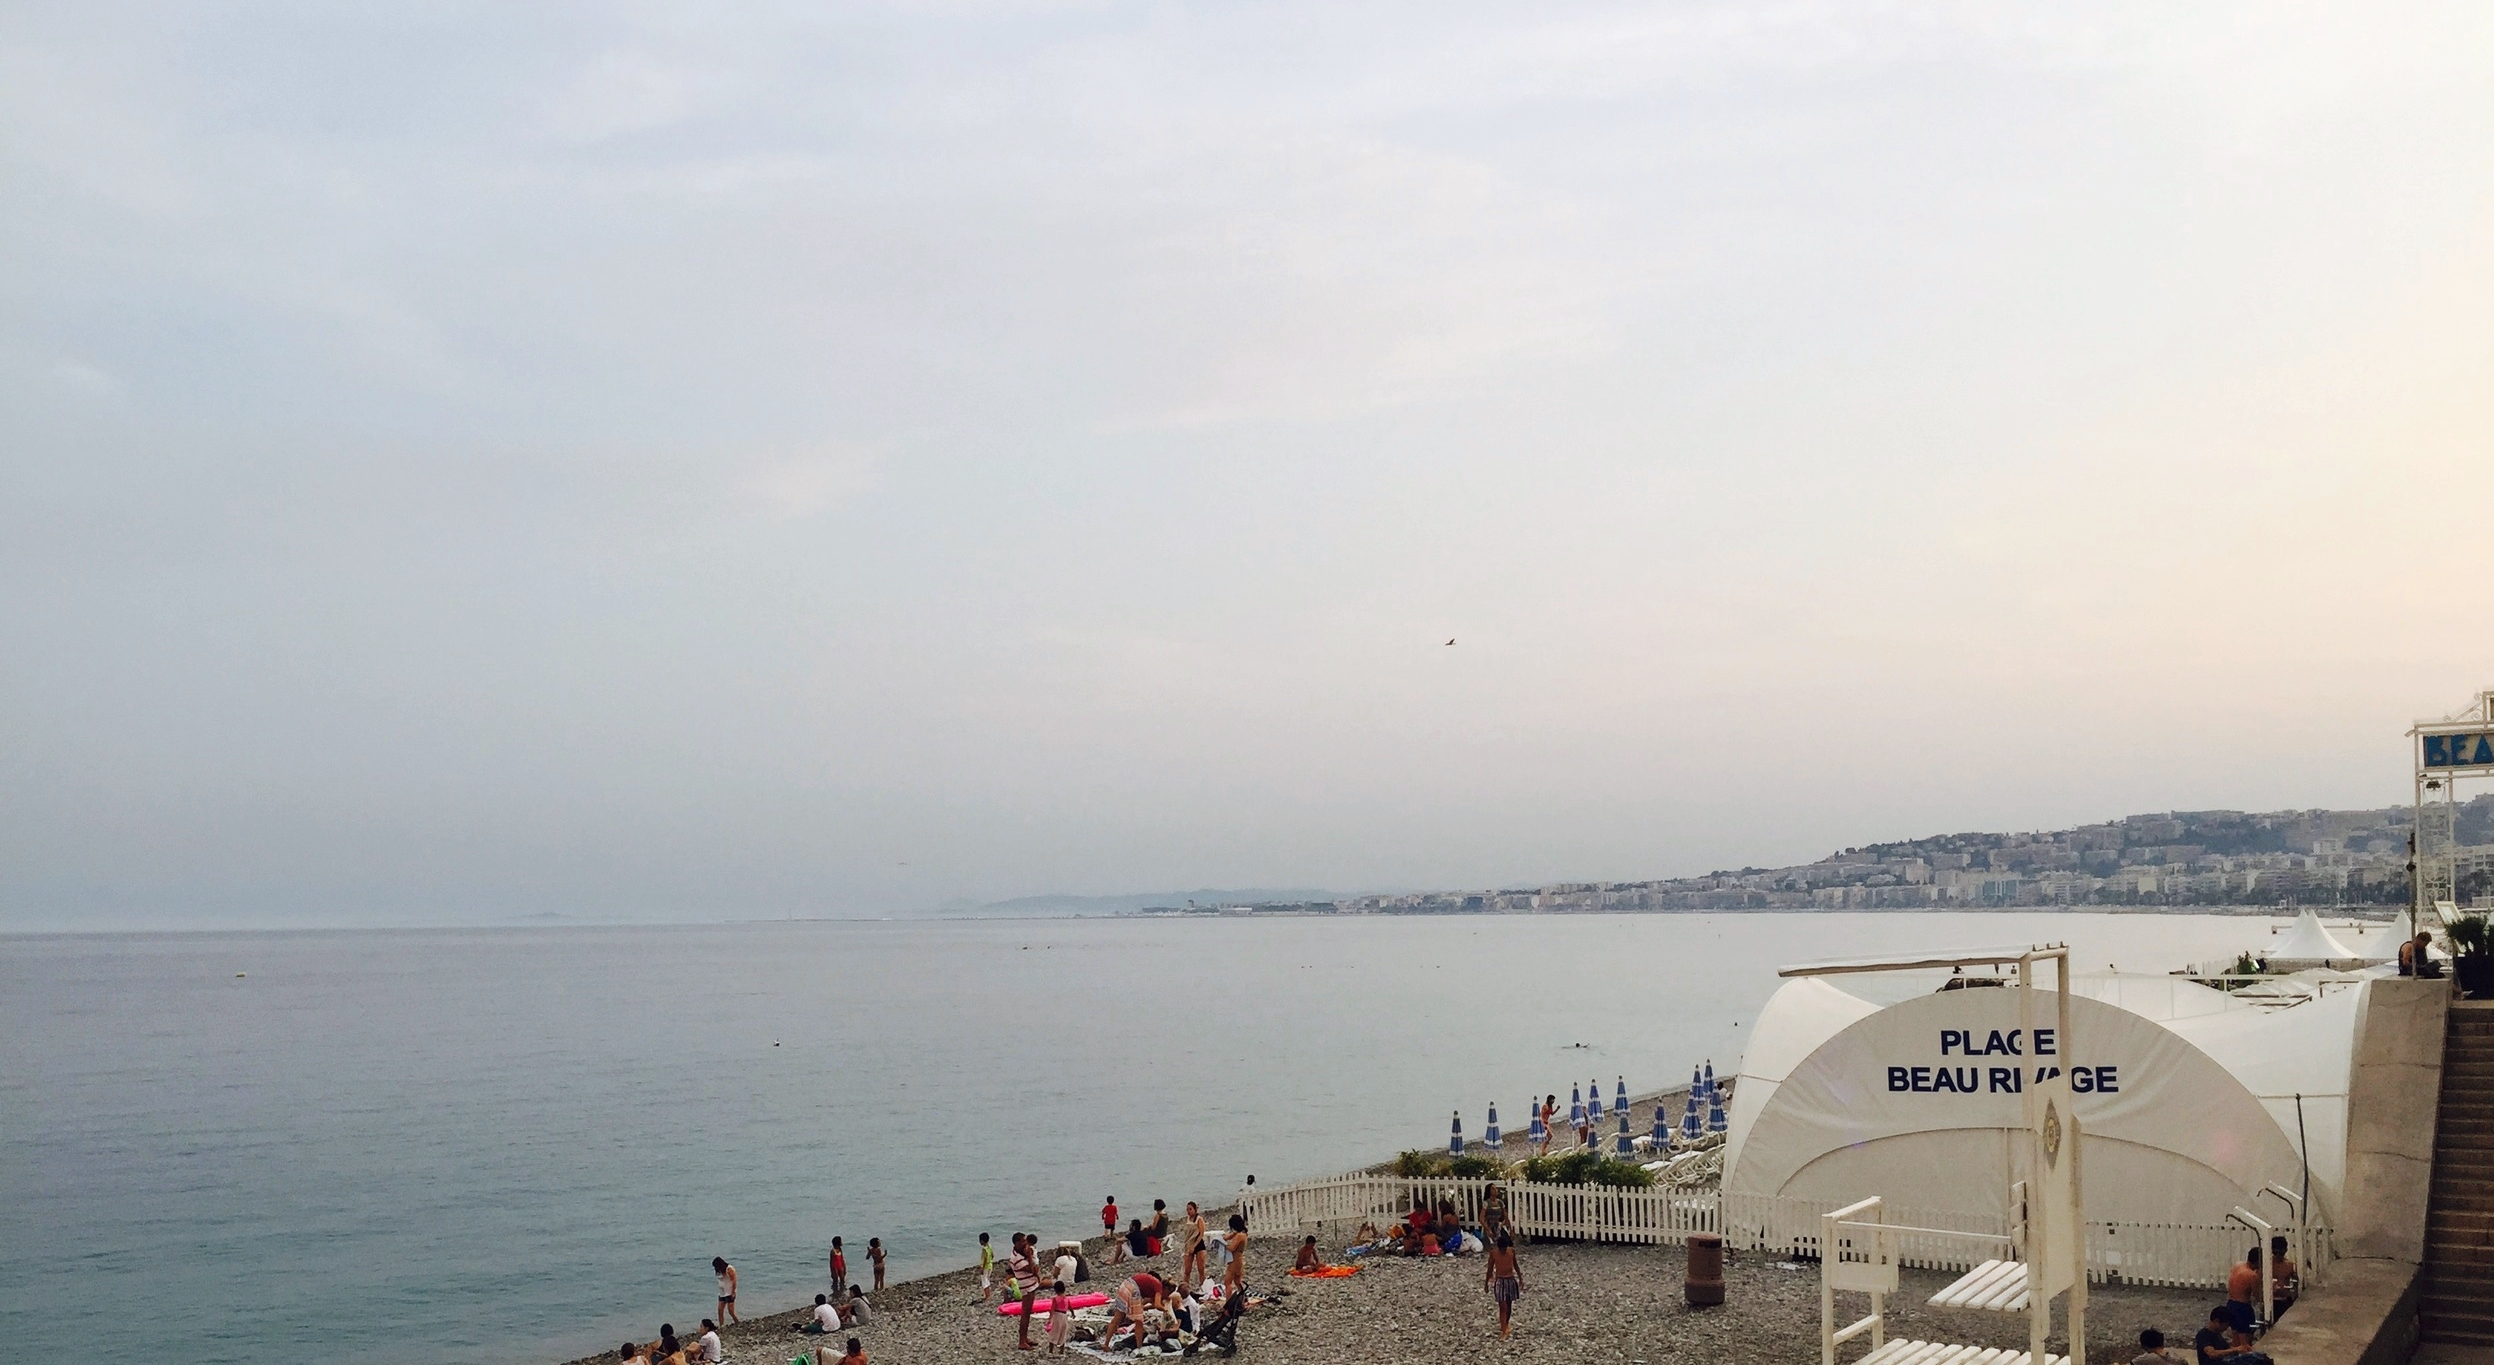 Nice, France at sunset